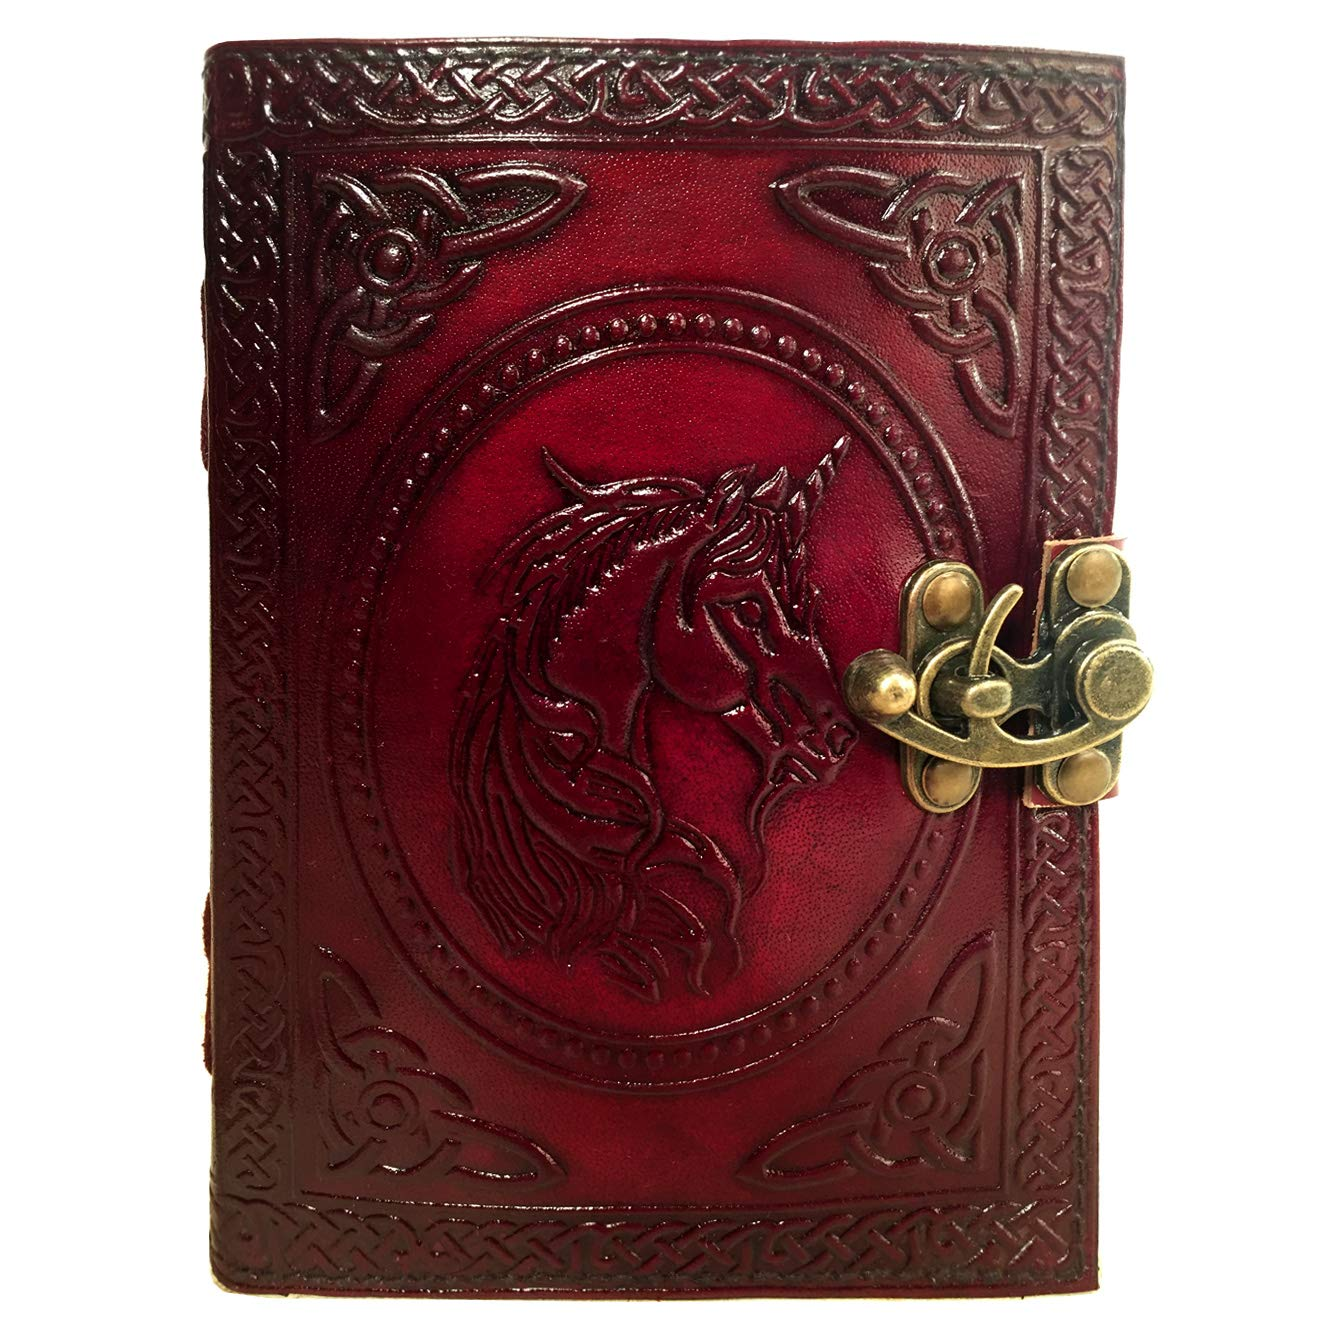 Leather Journal Book Unicorn Embossed Notebook Handmade Book of Shadows Handbook Blank Unlined Paper Office Diary College Book Poetry Book Sketch Book 5 x 7 Inches